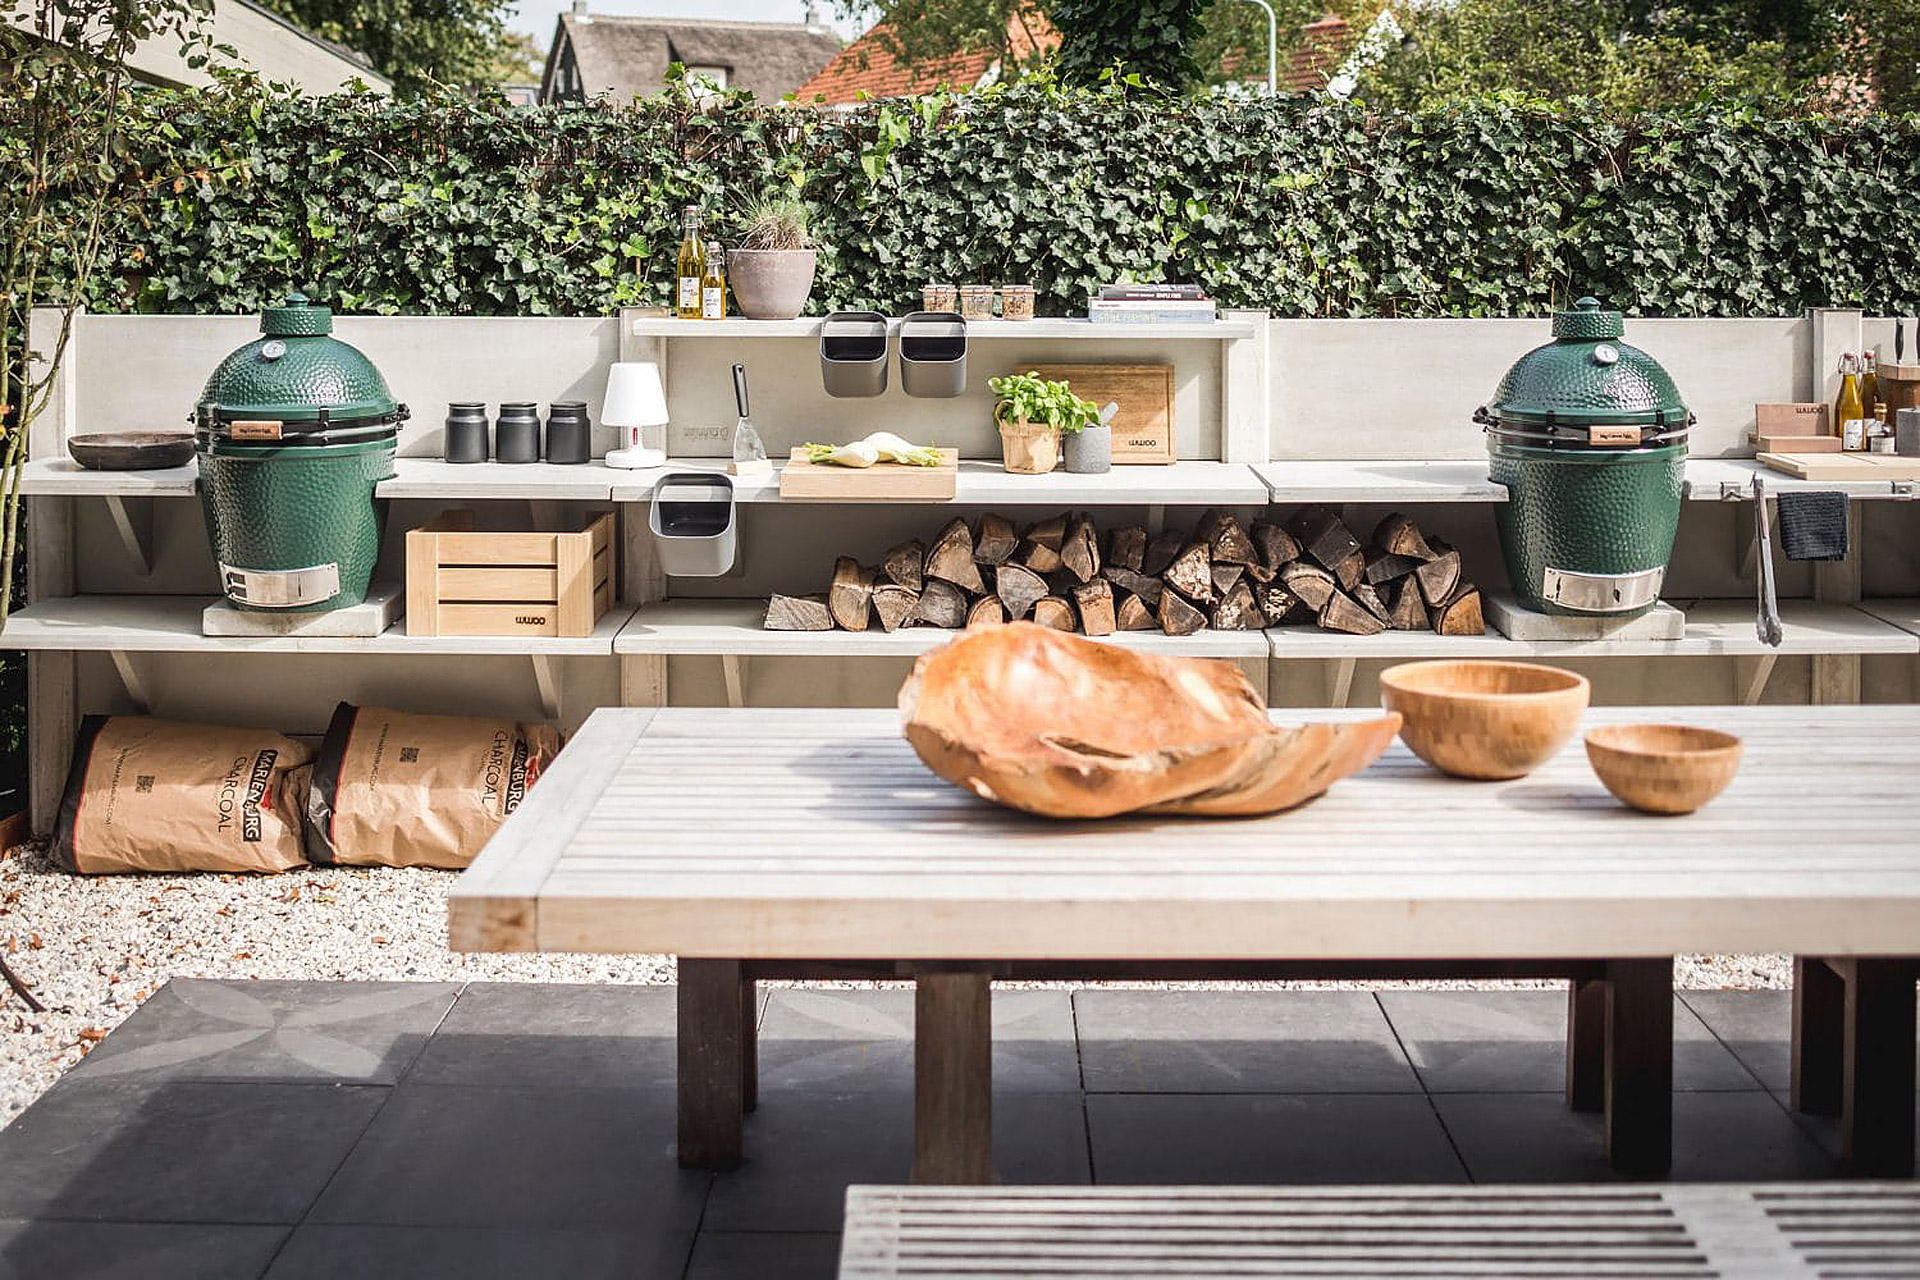 Outdoor kitchen with concrete counter tops